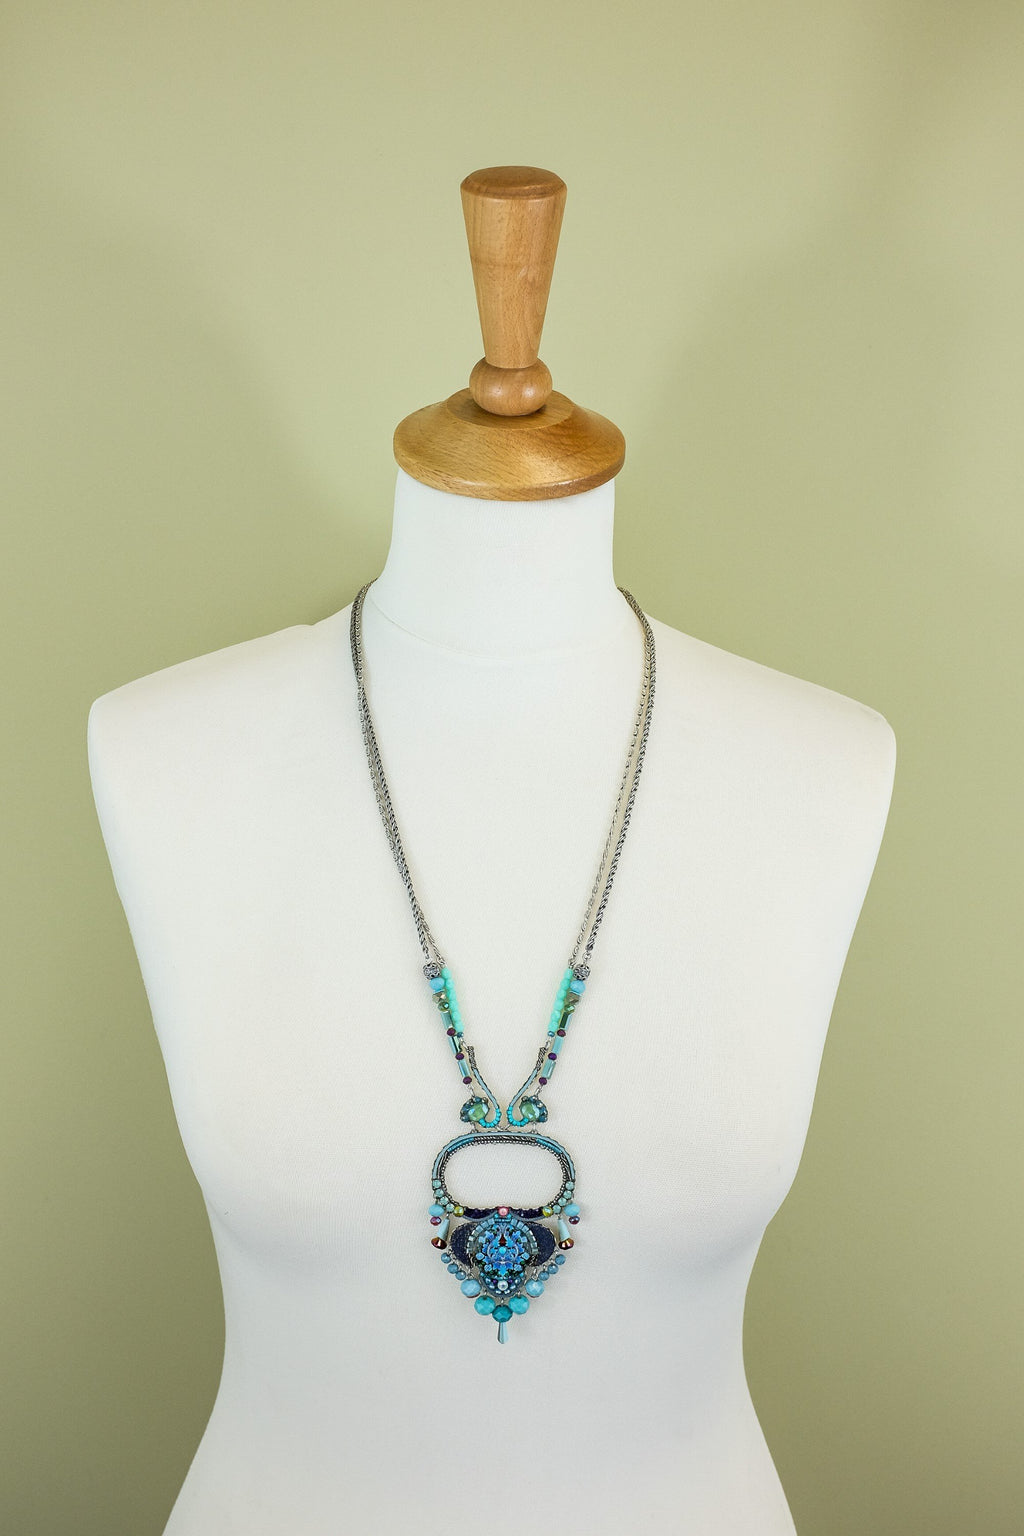 Ayalabar turquoise dreams soul necklace